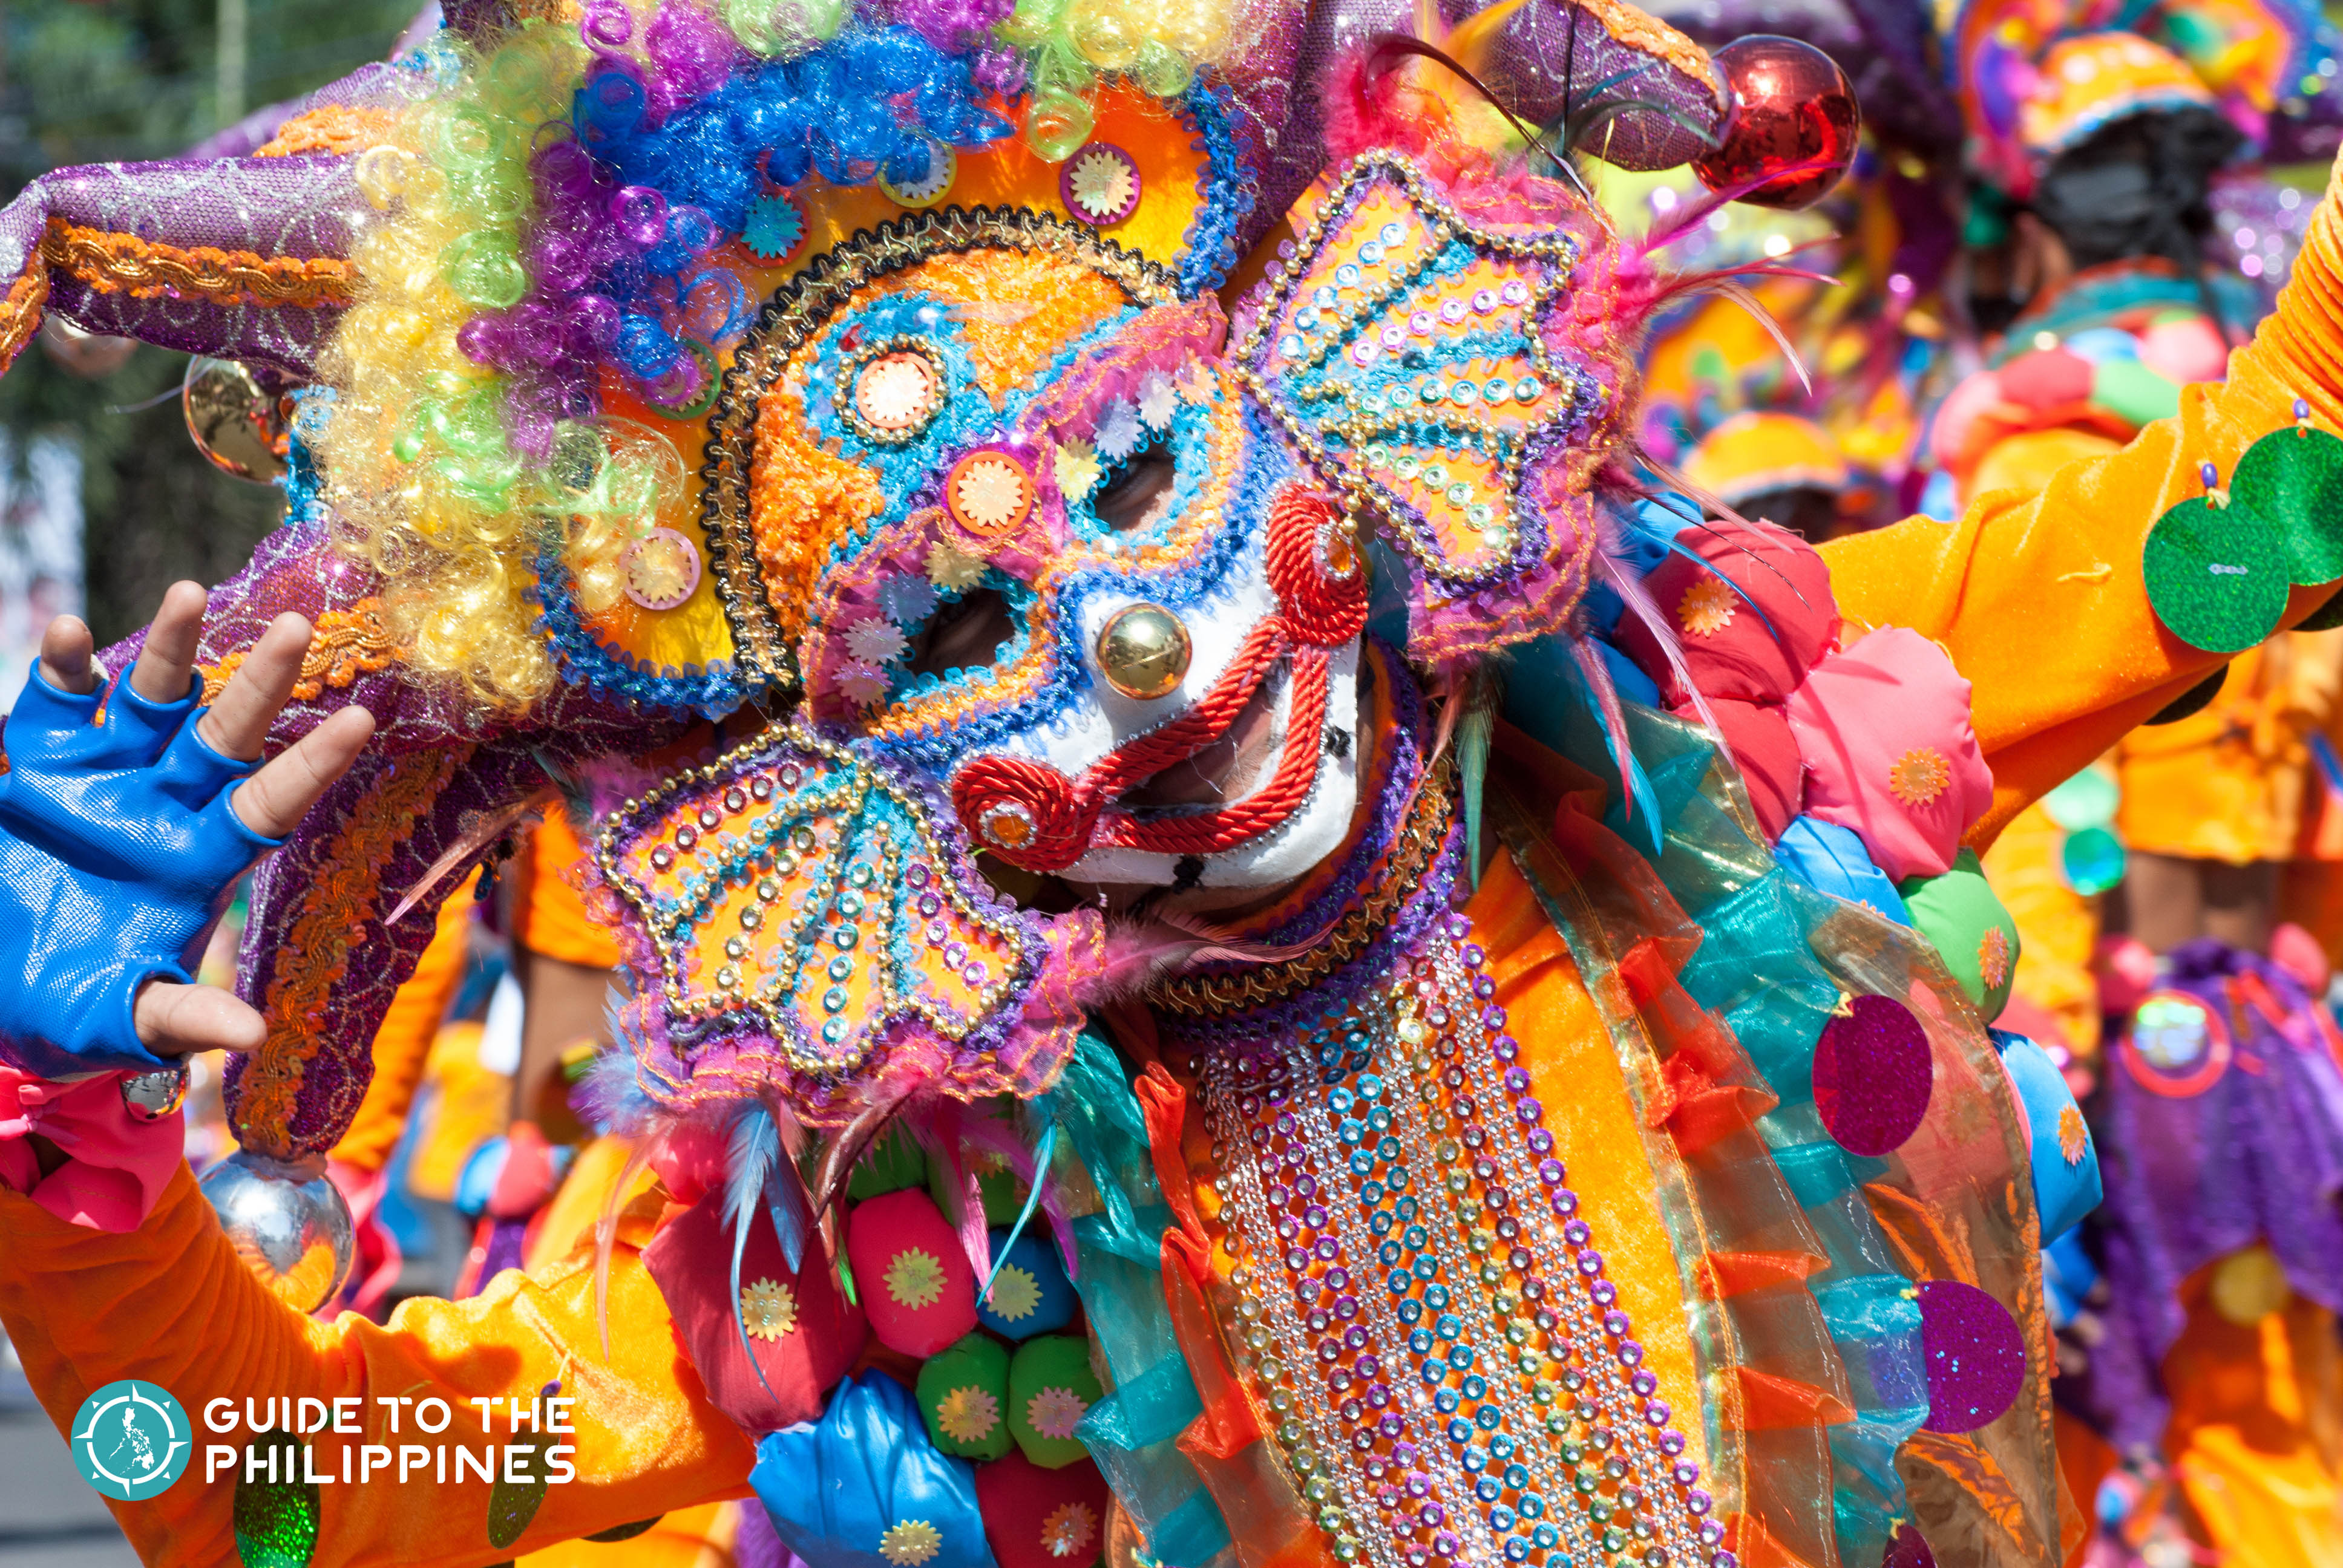 Bacolod City Travel Guide: Home of the Colorful MassKara Festival